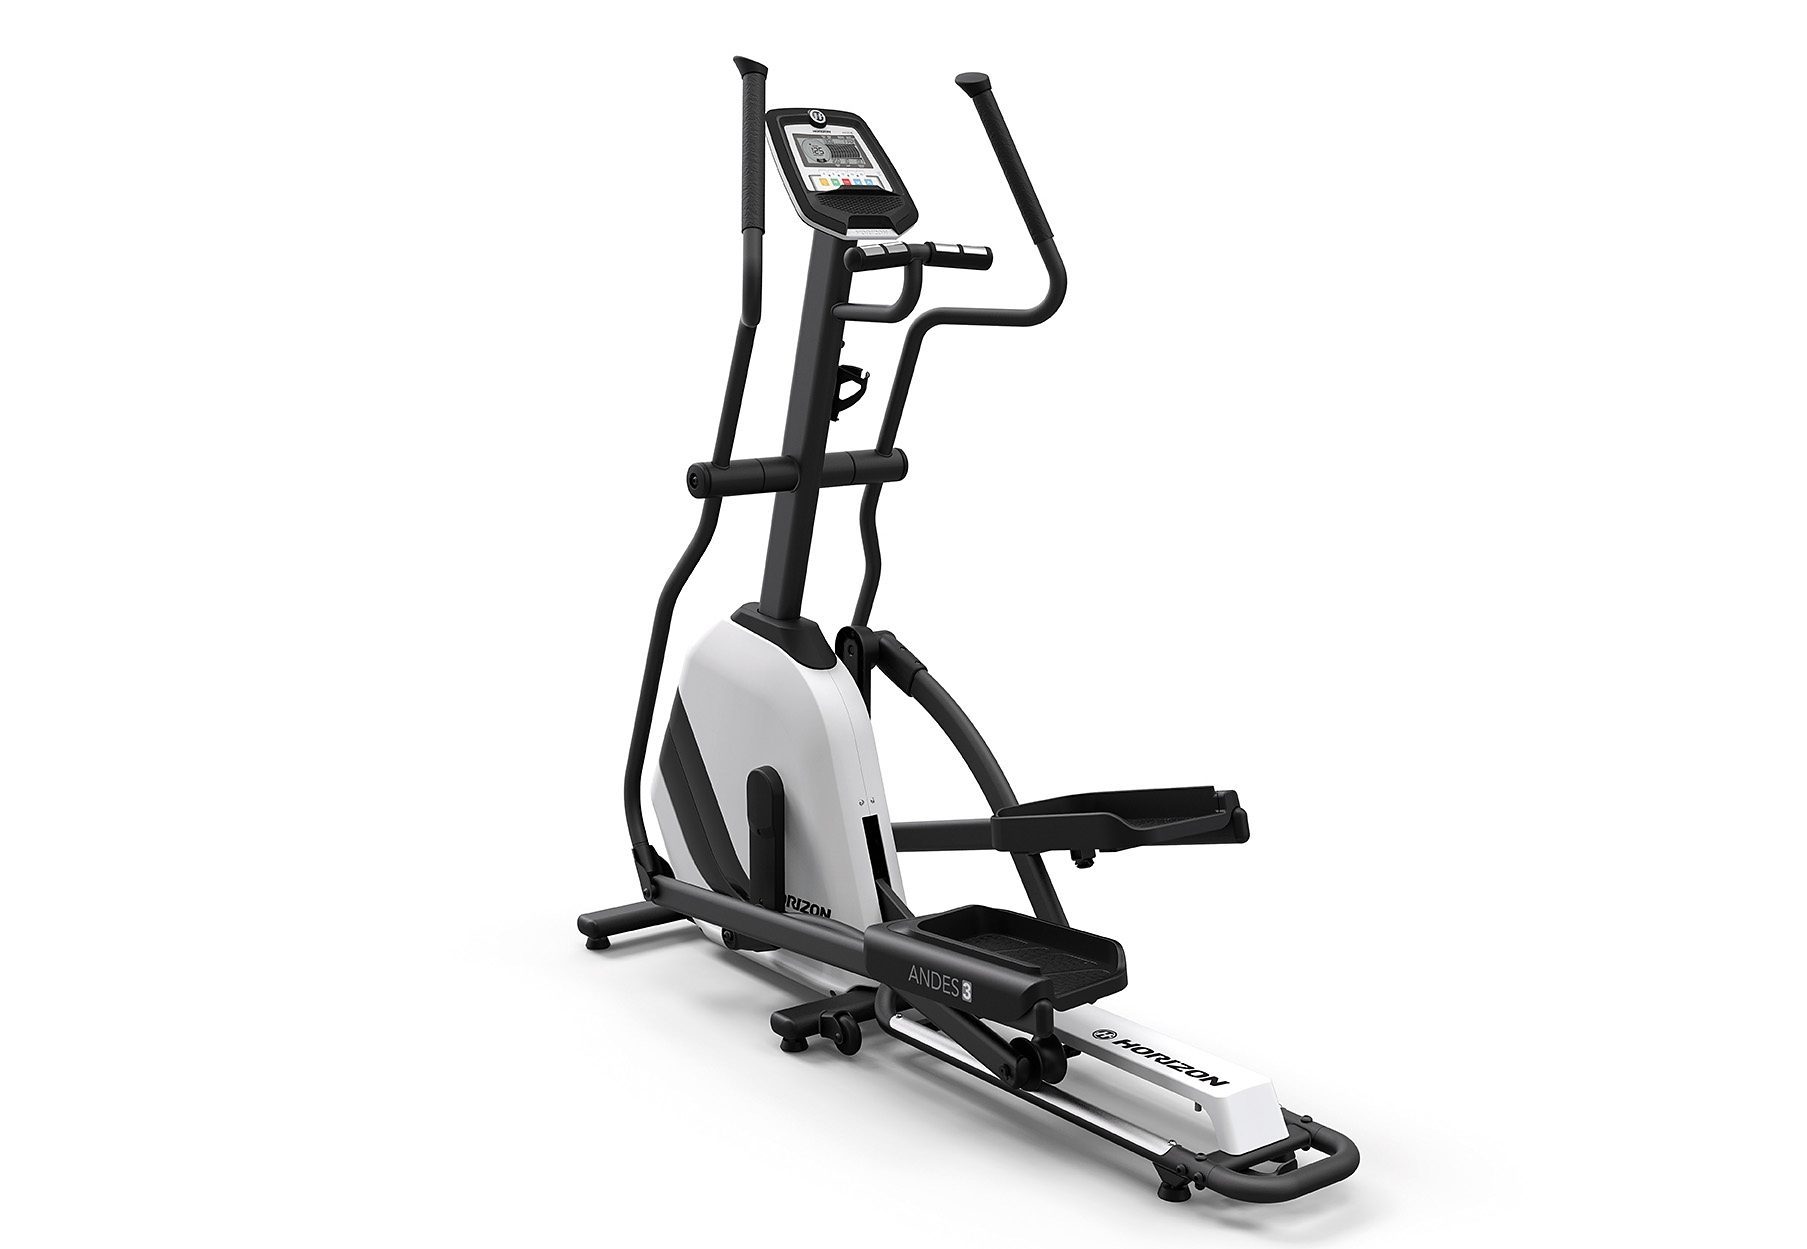 Horizon Fitness Elliptical Ergometer, »Andes 3«